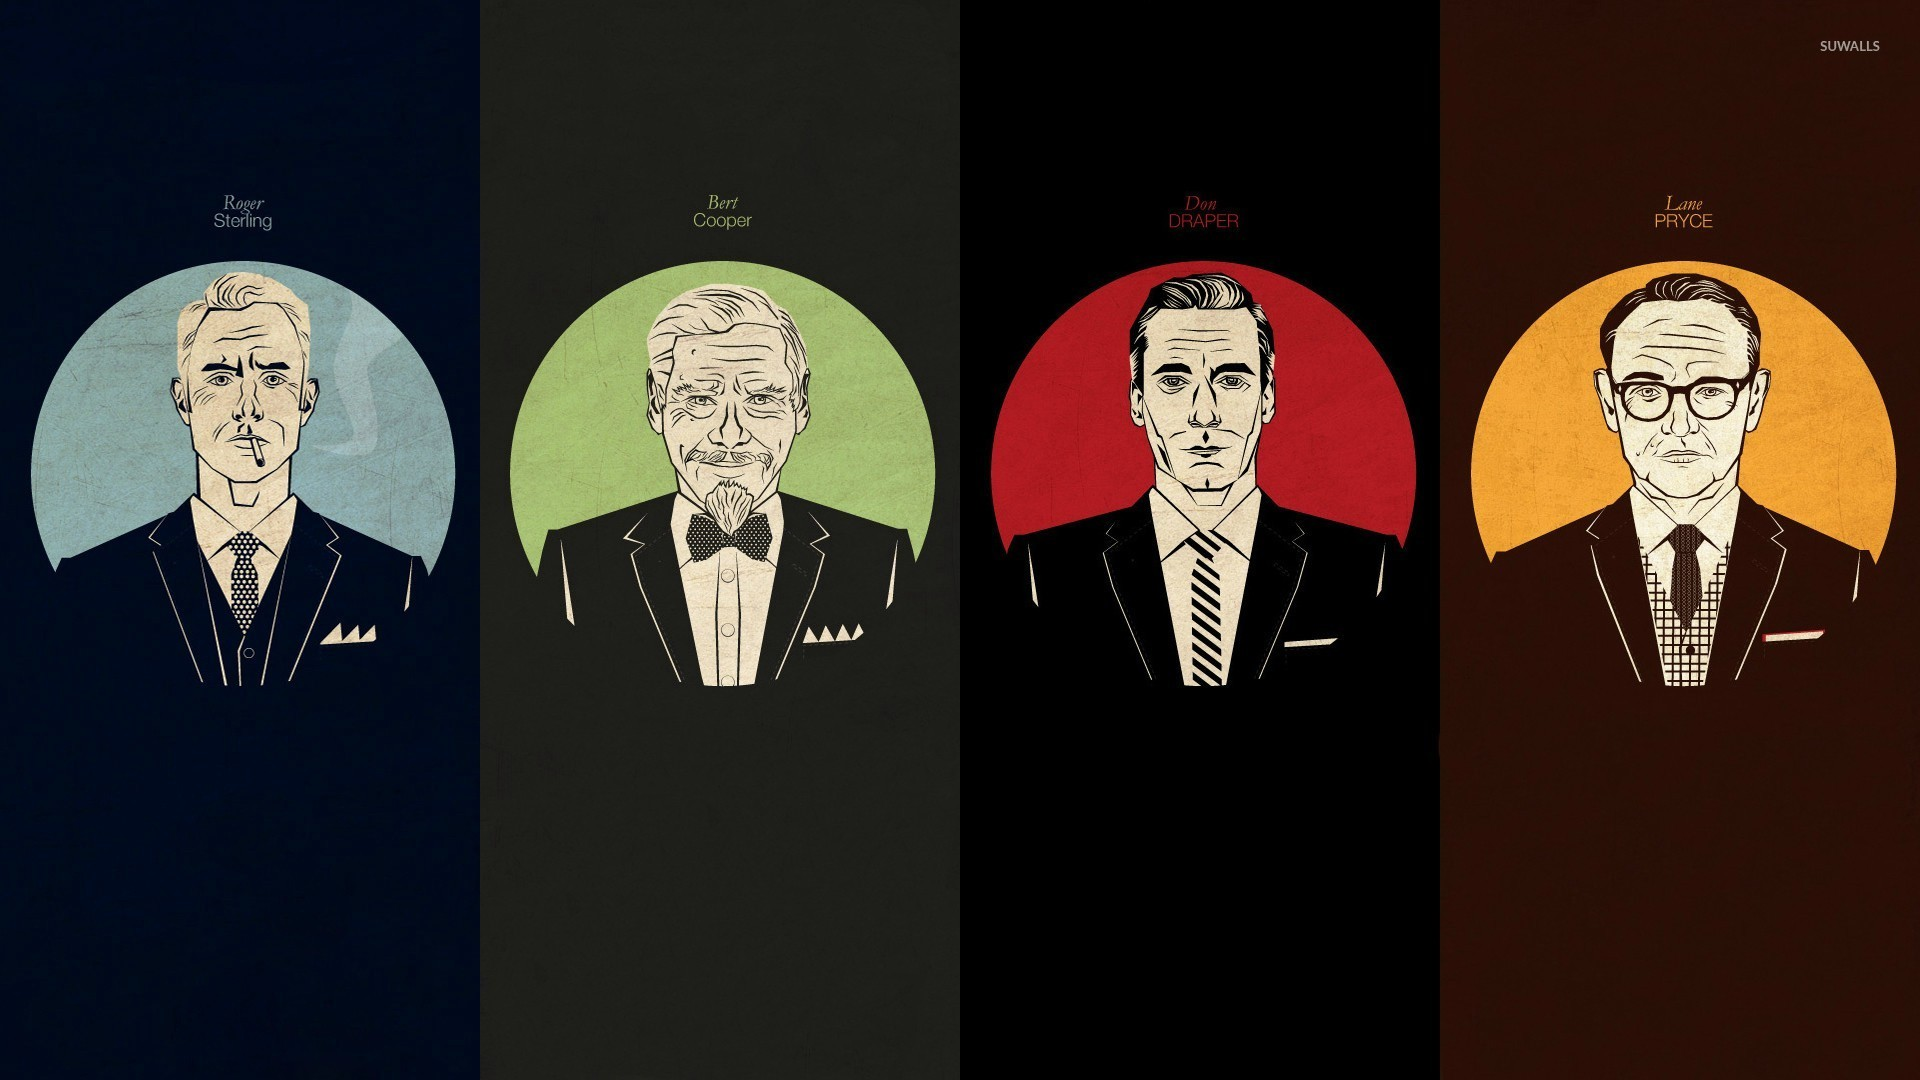 Mad men wallpapers free download mad men wallpapers voltagebd